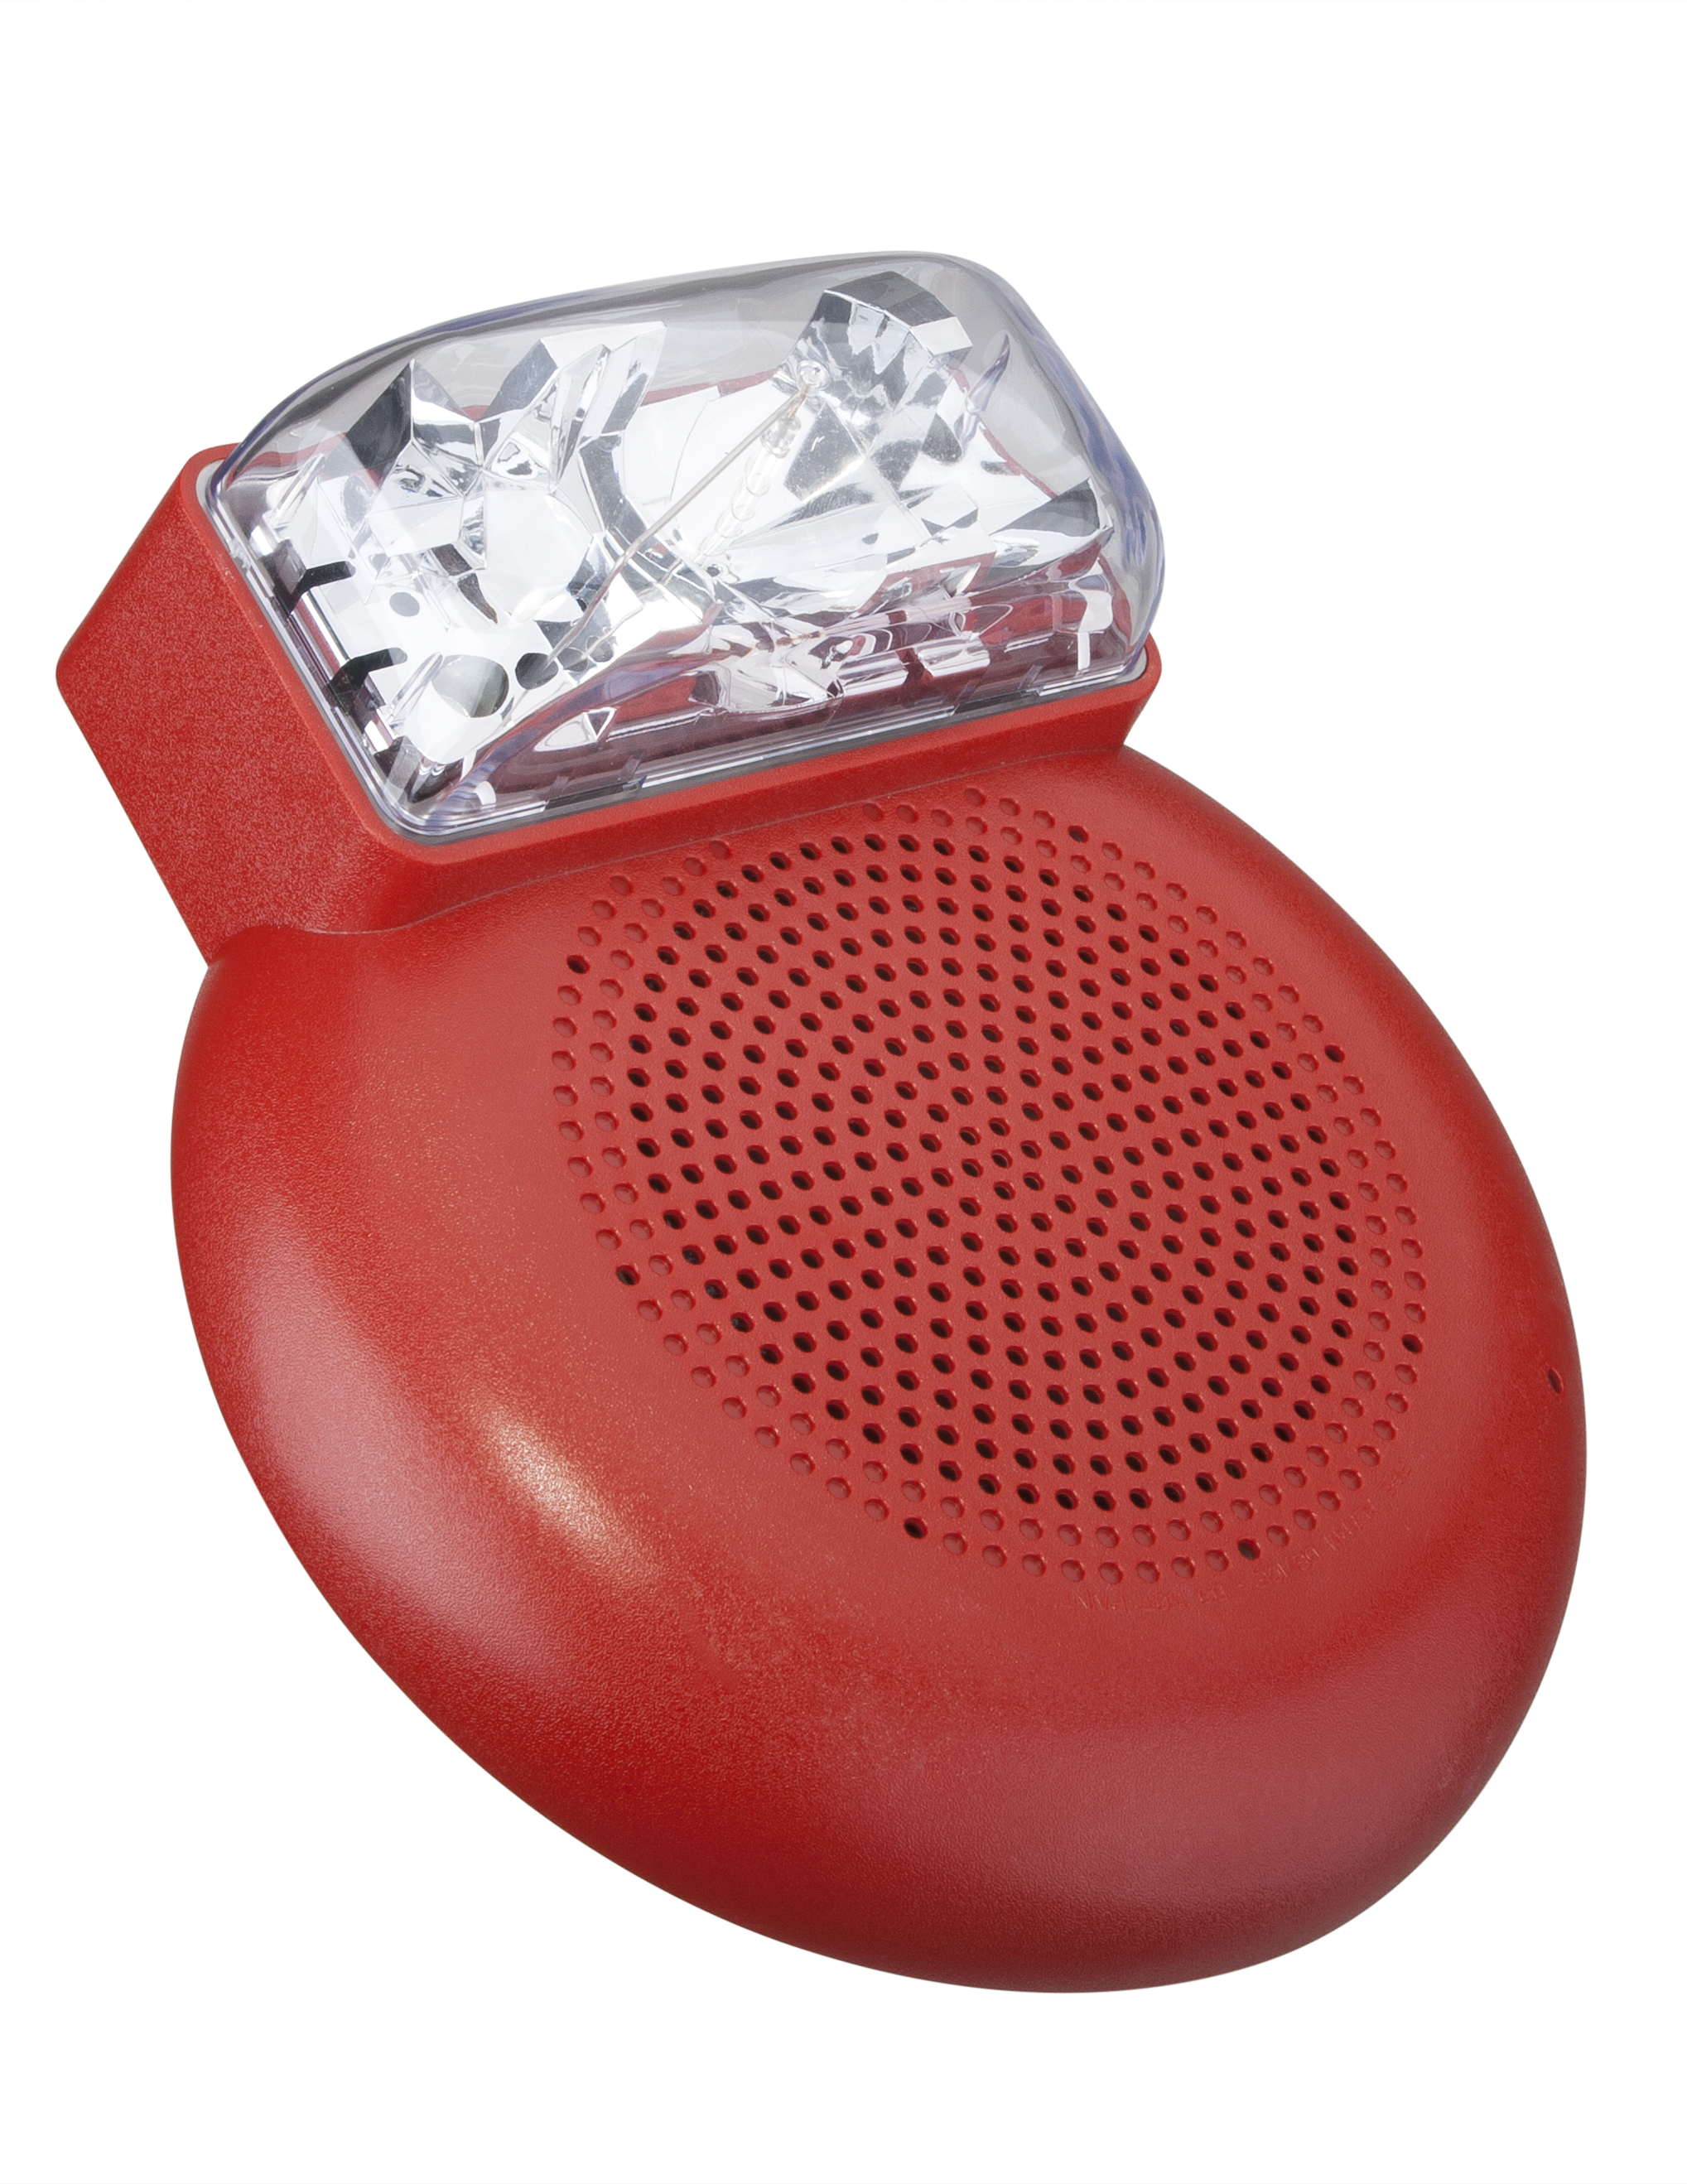 TYCO Introduces Fire Alarm Industry's First Addressable Speakers